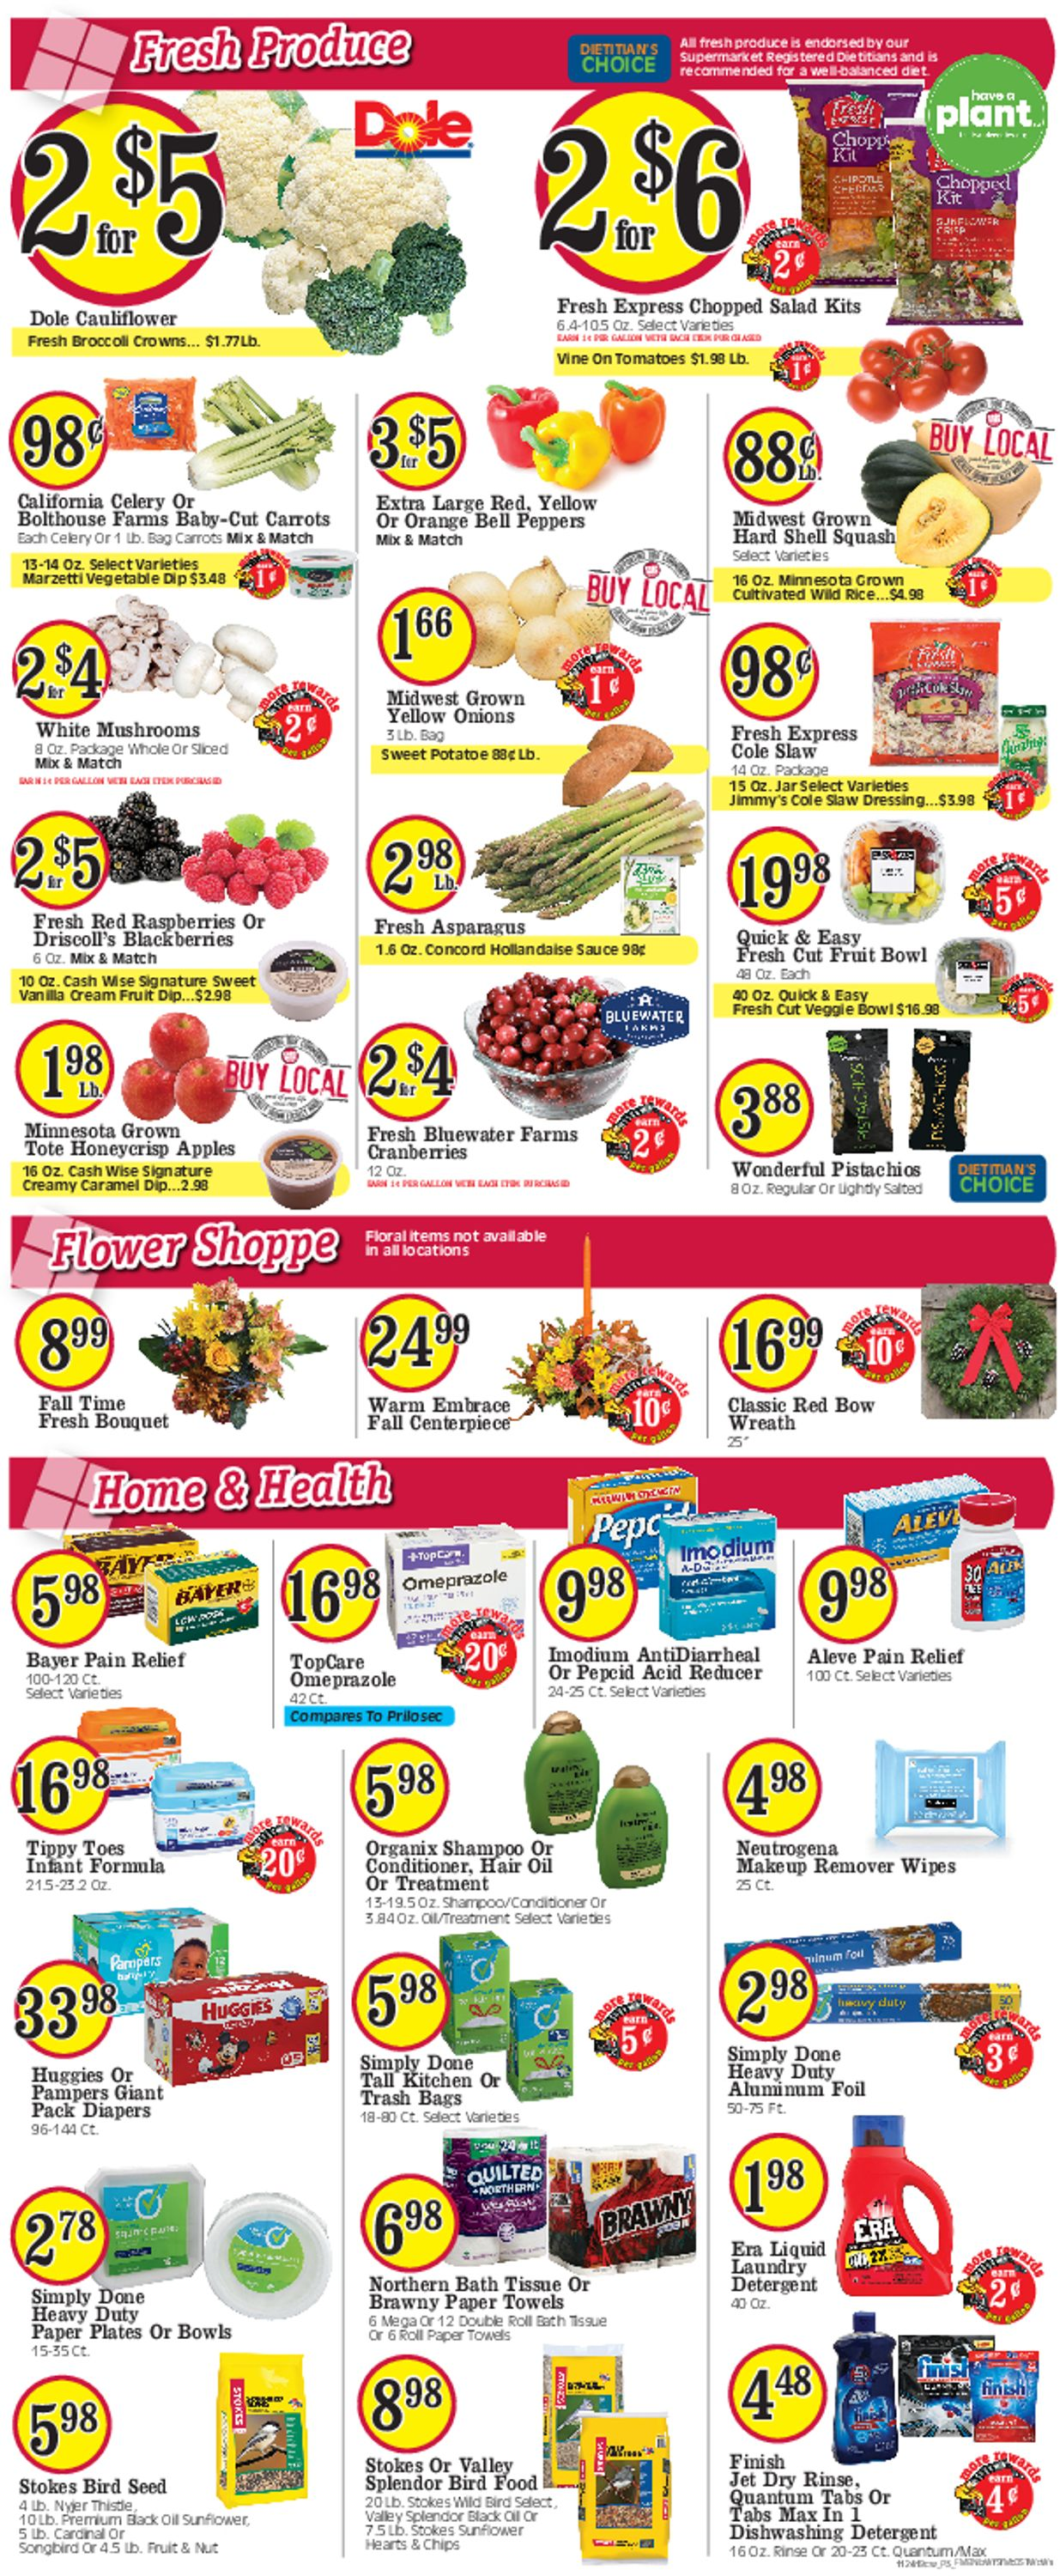 Catalogue Cash Wise - Black Friday Ad 2019 from 11/27/2019